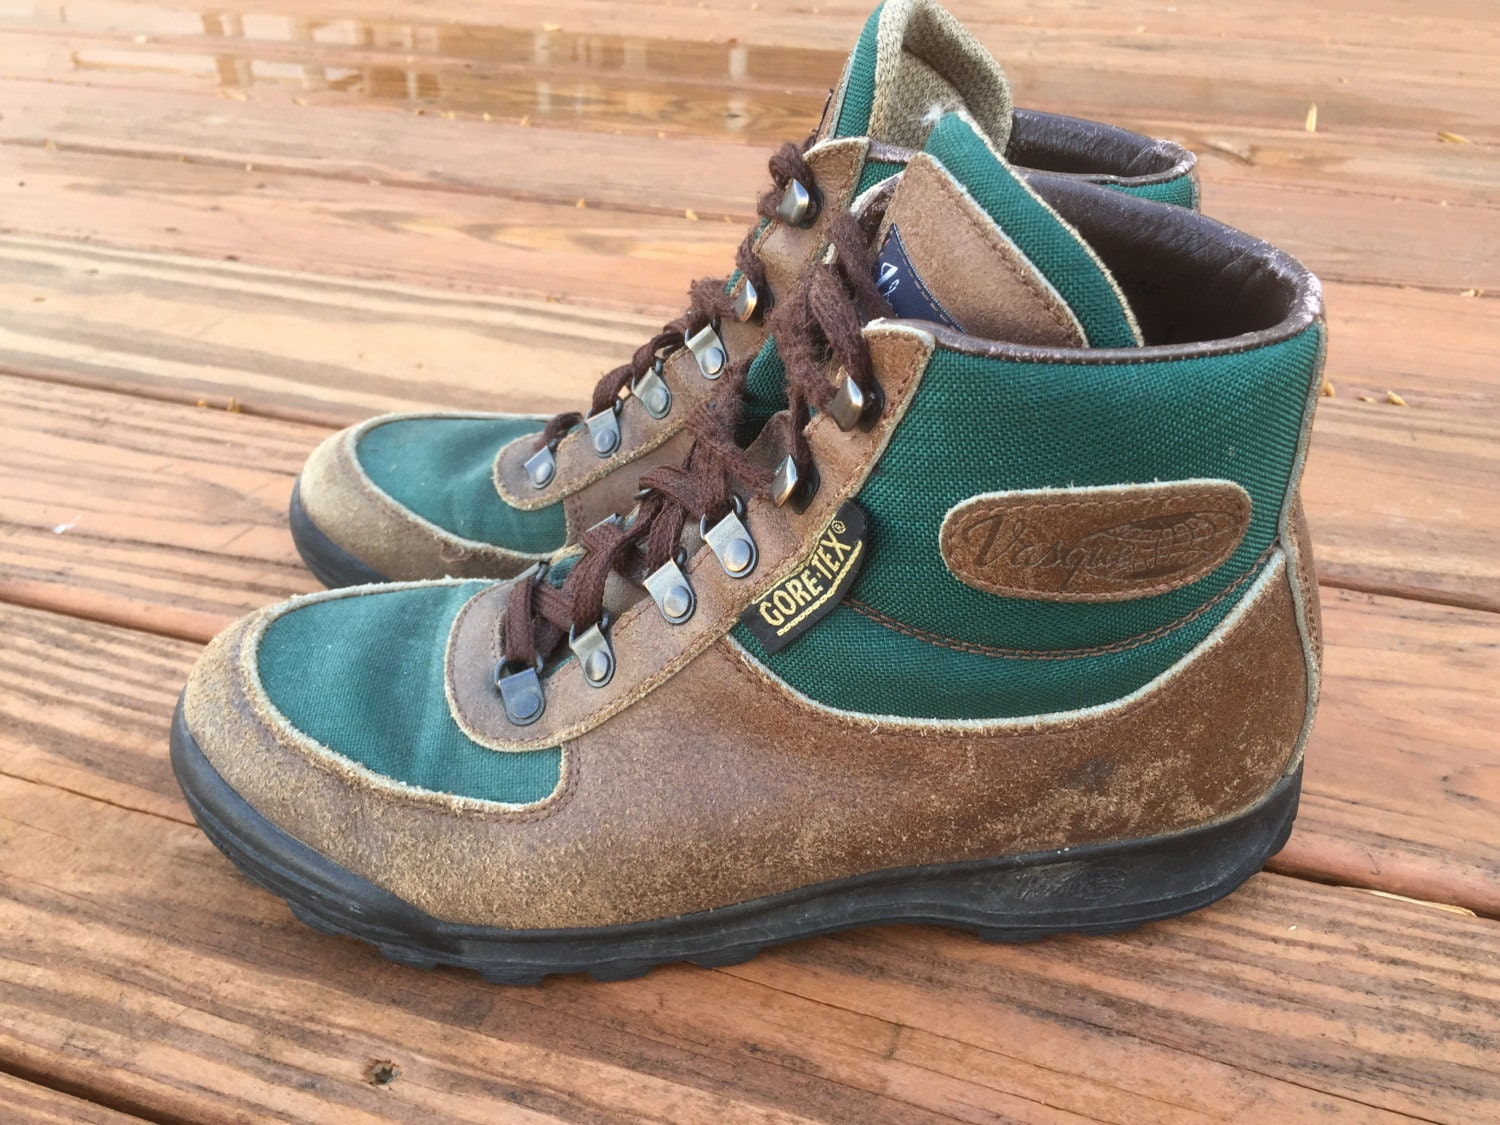 vintage vasque skywalk leather hiking boots brown green. Black Bedroom Furniture Sets. Home Design Ideas